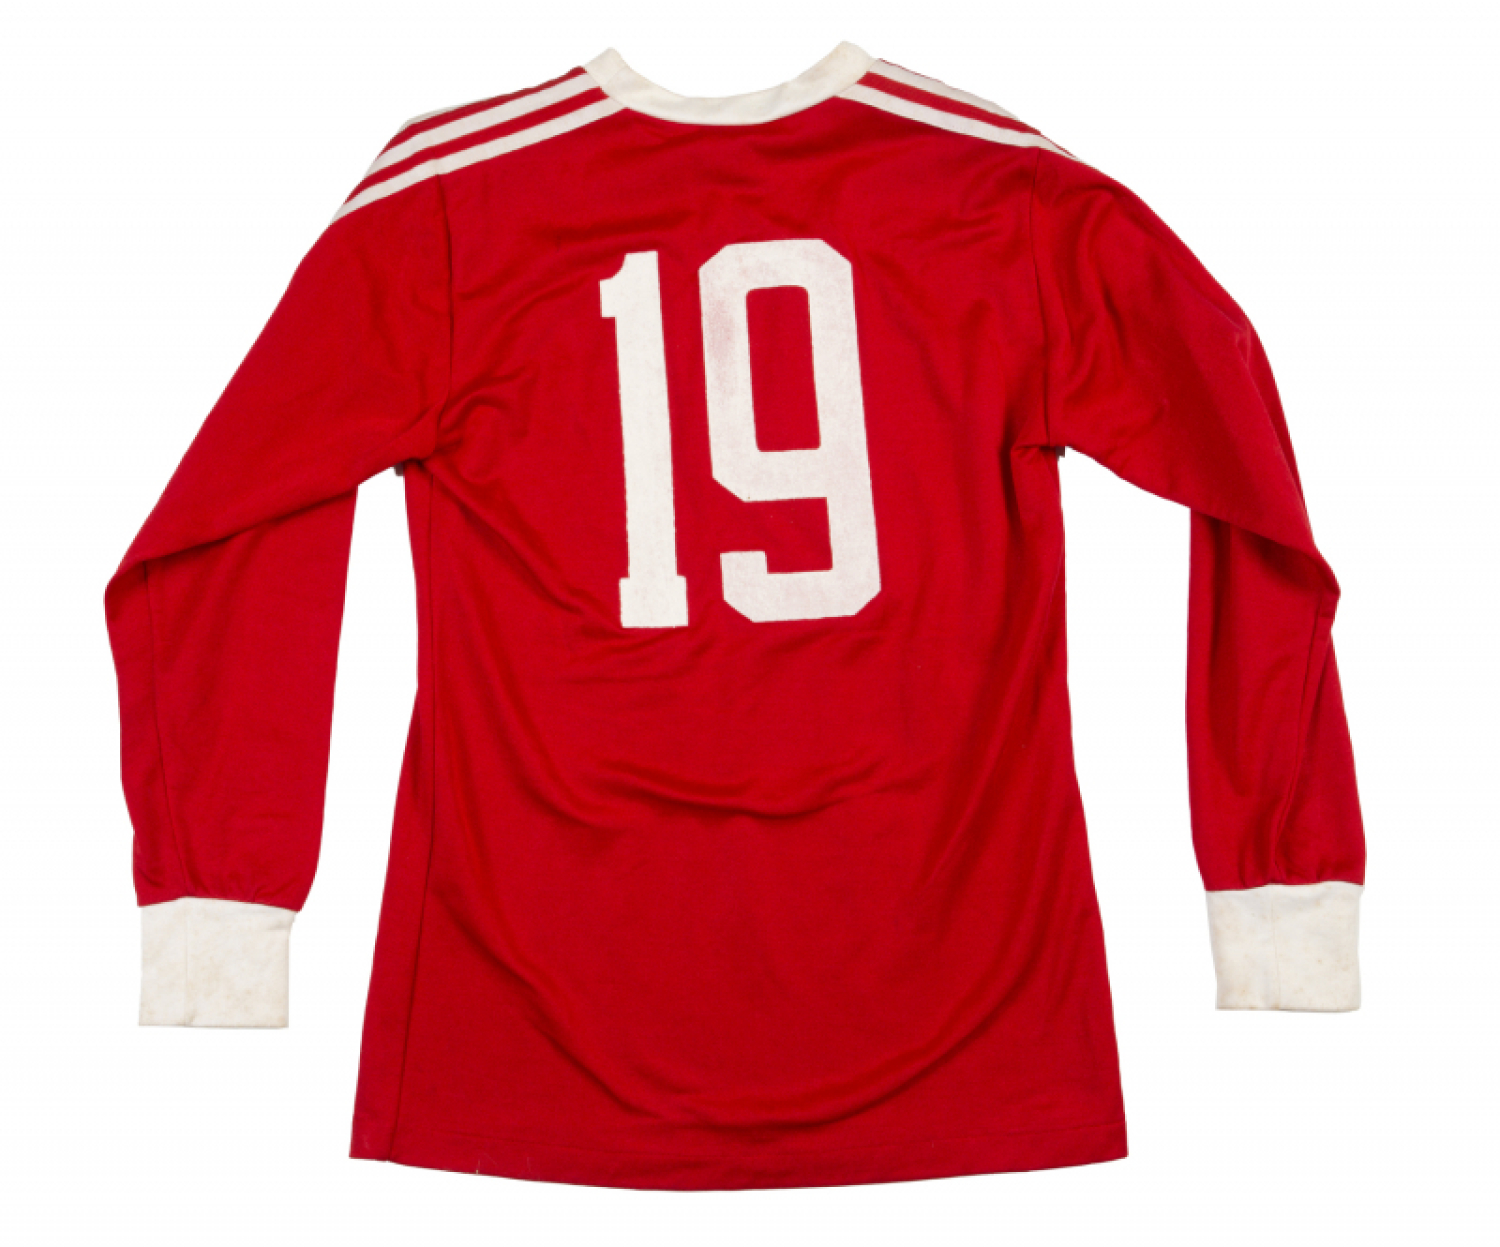 huge discount 43cff 14ad4 WLODZIMIERZ LUBANSKI POLAND NATIONAL TEAM 1978 WORLD CUP ...